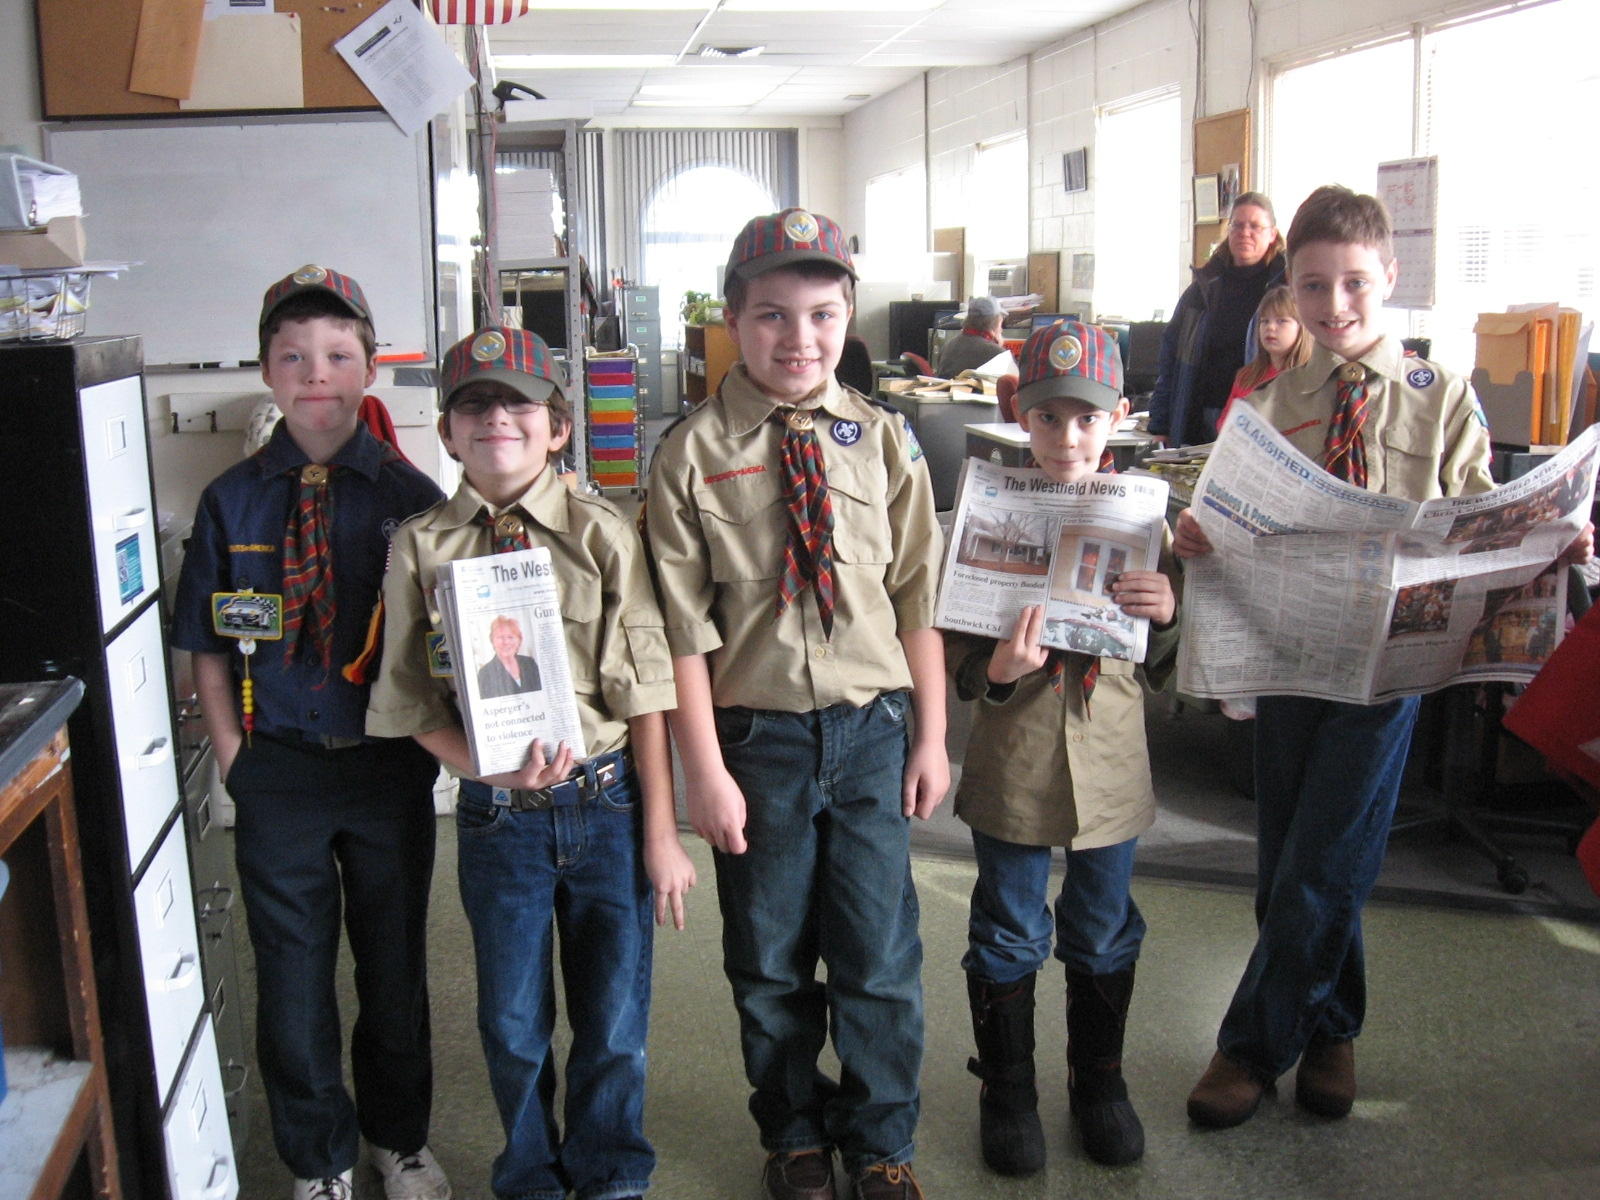 The Webelo Den from Cub Scout Pack 820 in Westfield spent part of their Christmas break learning about various businesses and one of them was The Westfield News Group. Shown here are  (L-R) Nicholas Paulson, Matt Thayer, Corey Farnsworth, Jake Falcetti and Sam MacMunn in the newsroom of The Westfield News Group.  (Photo submitted)